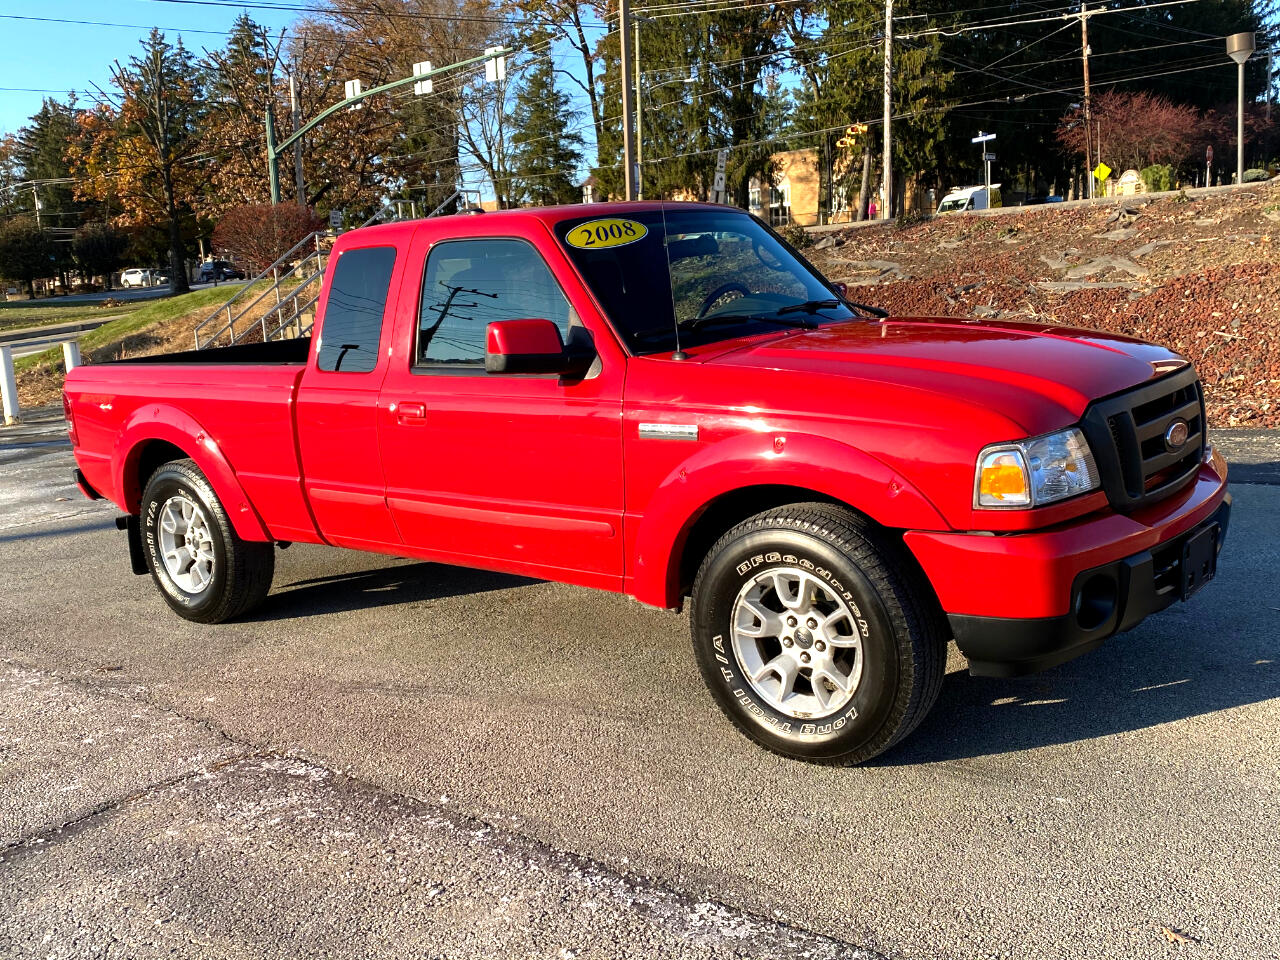 Ford Ranger Sport SuperCab 4 Door 4WD 2008